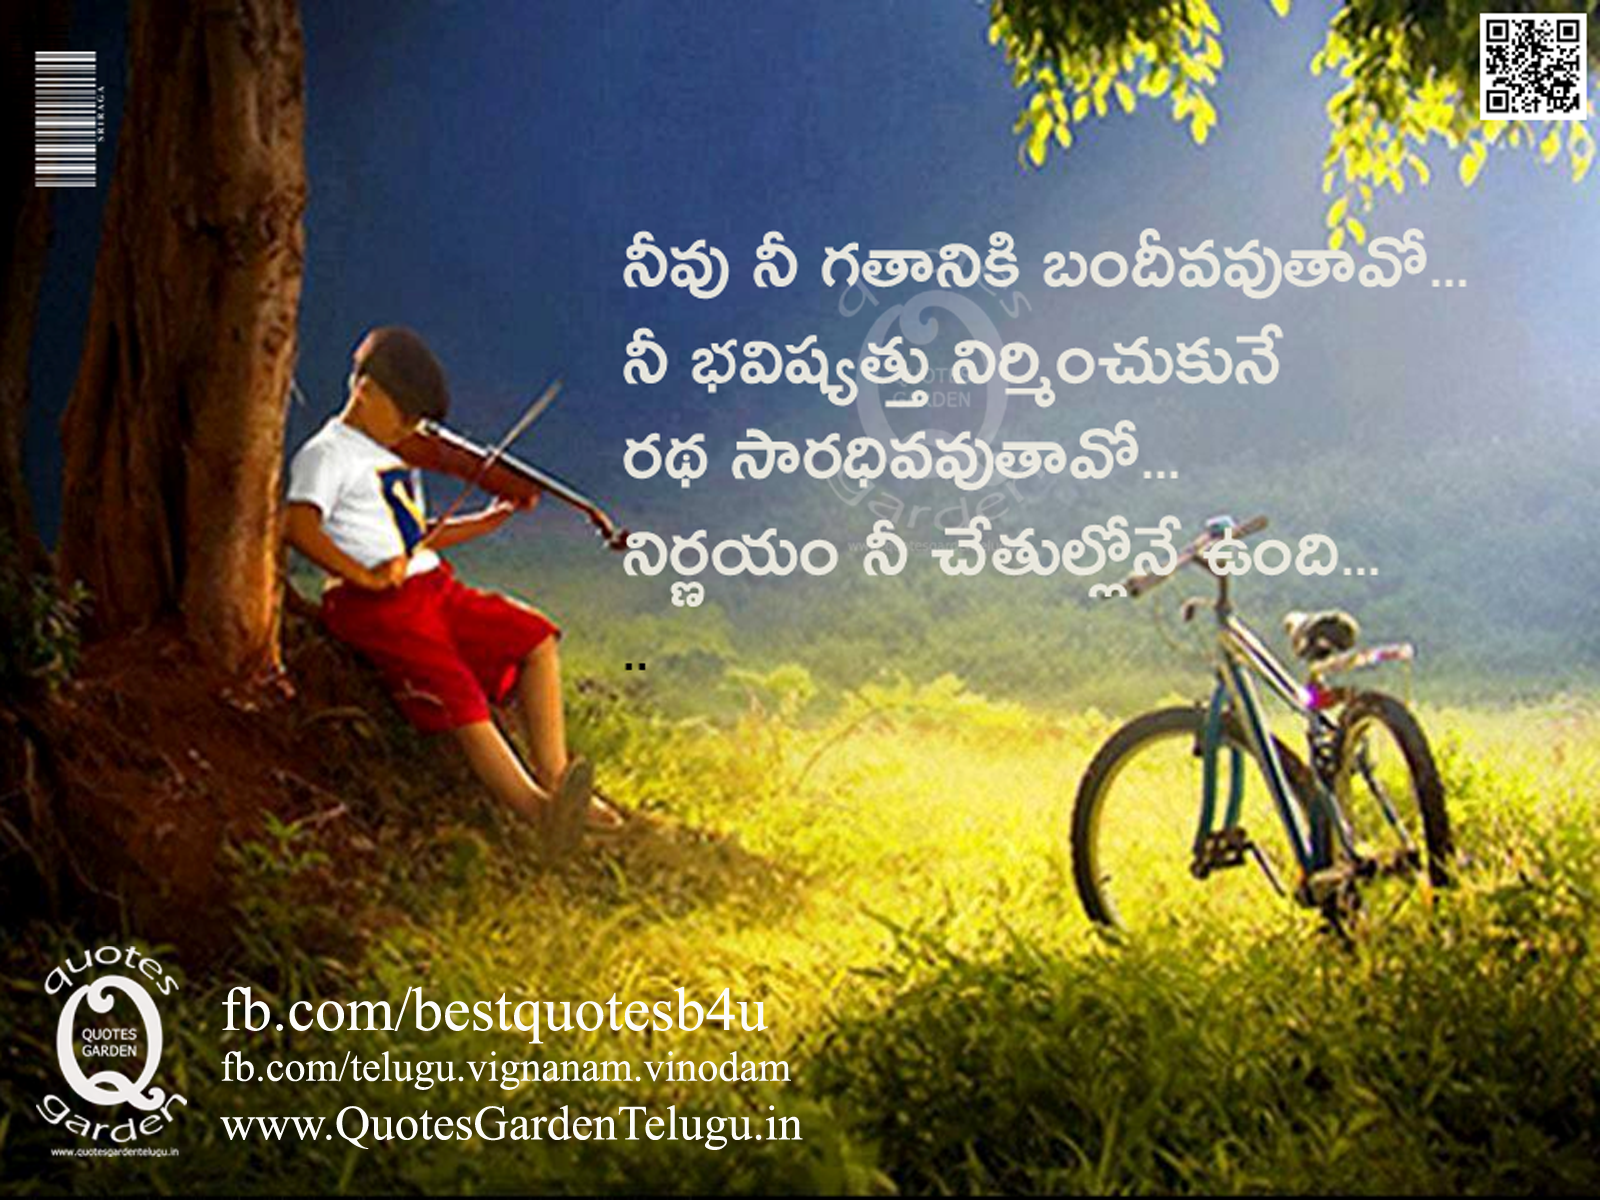 Telugu-Best-Inspirational-Beautiful-Nice-Wallpapers-Quotes-images